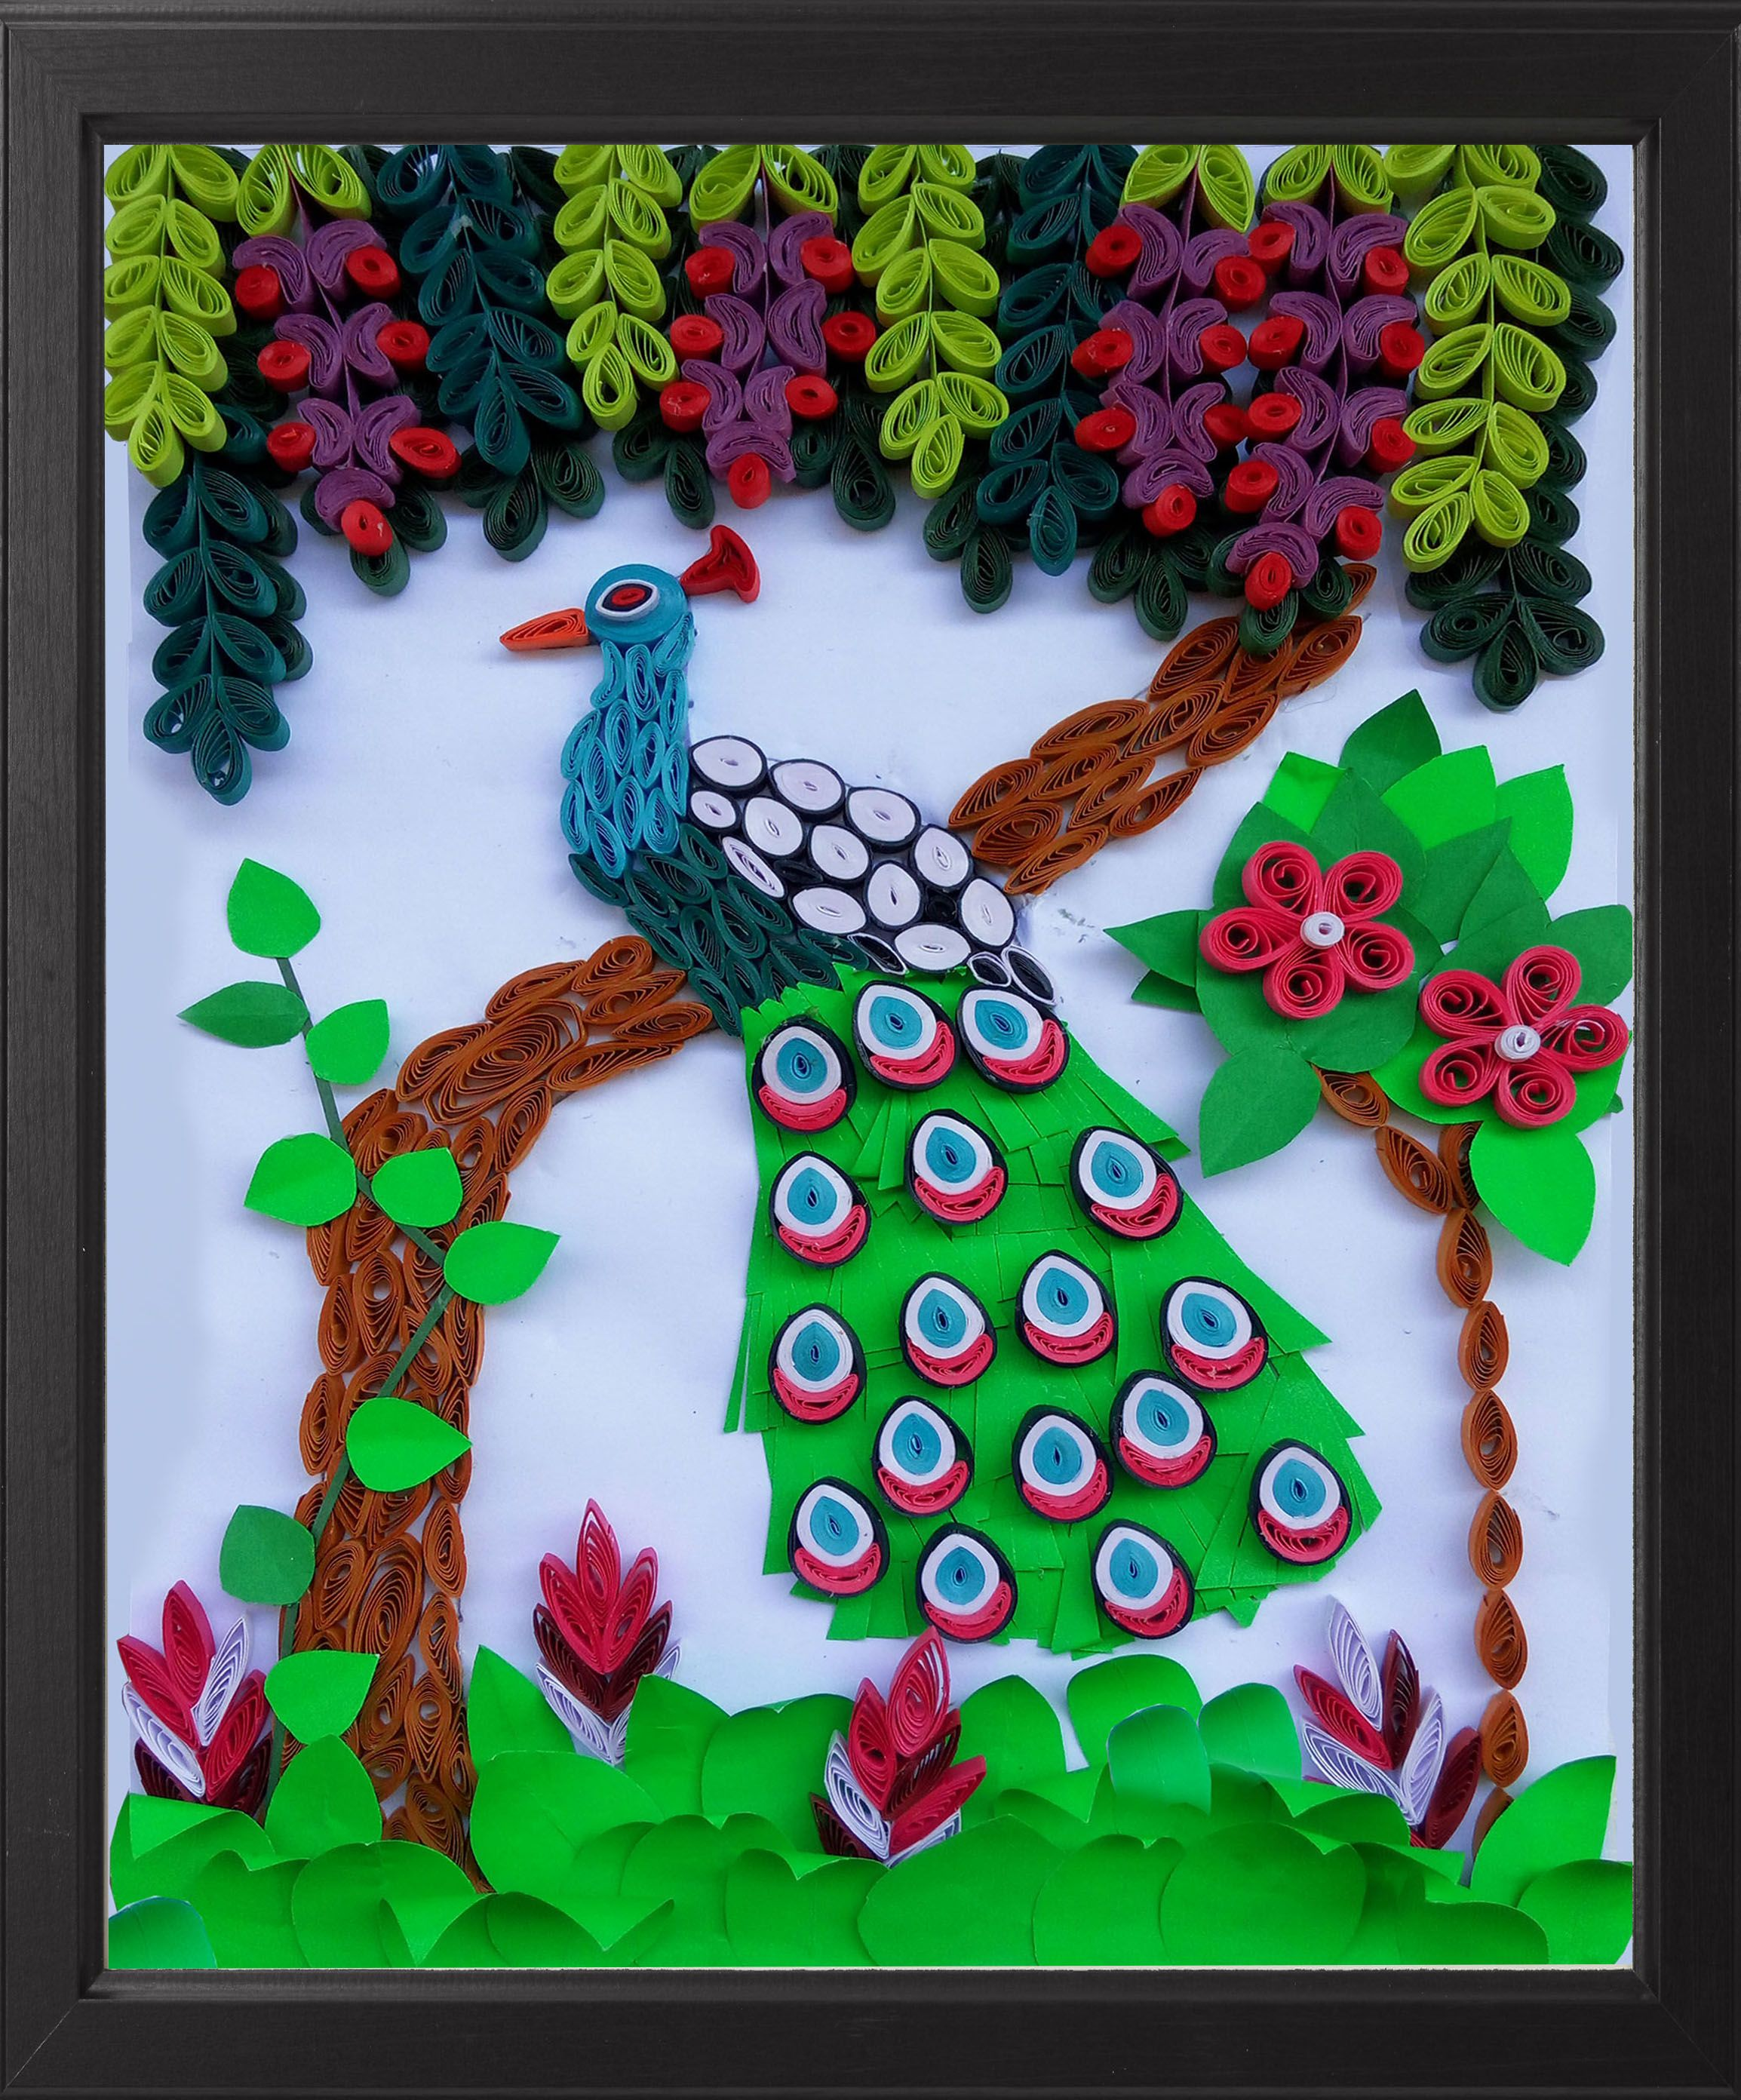 Paper Quilling Peacock Wall Art in a frame Peacock Wall